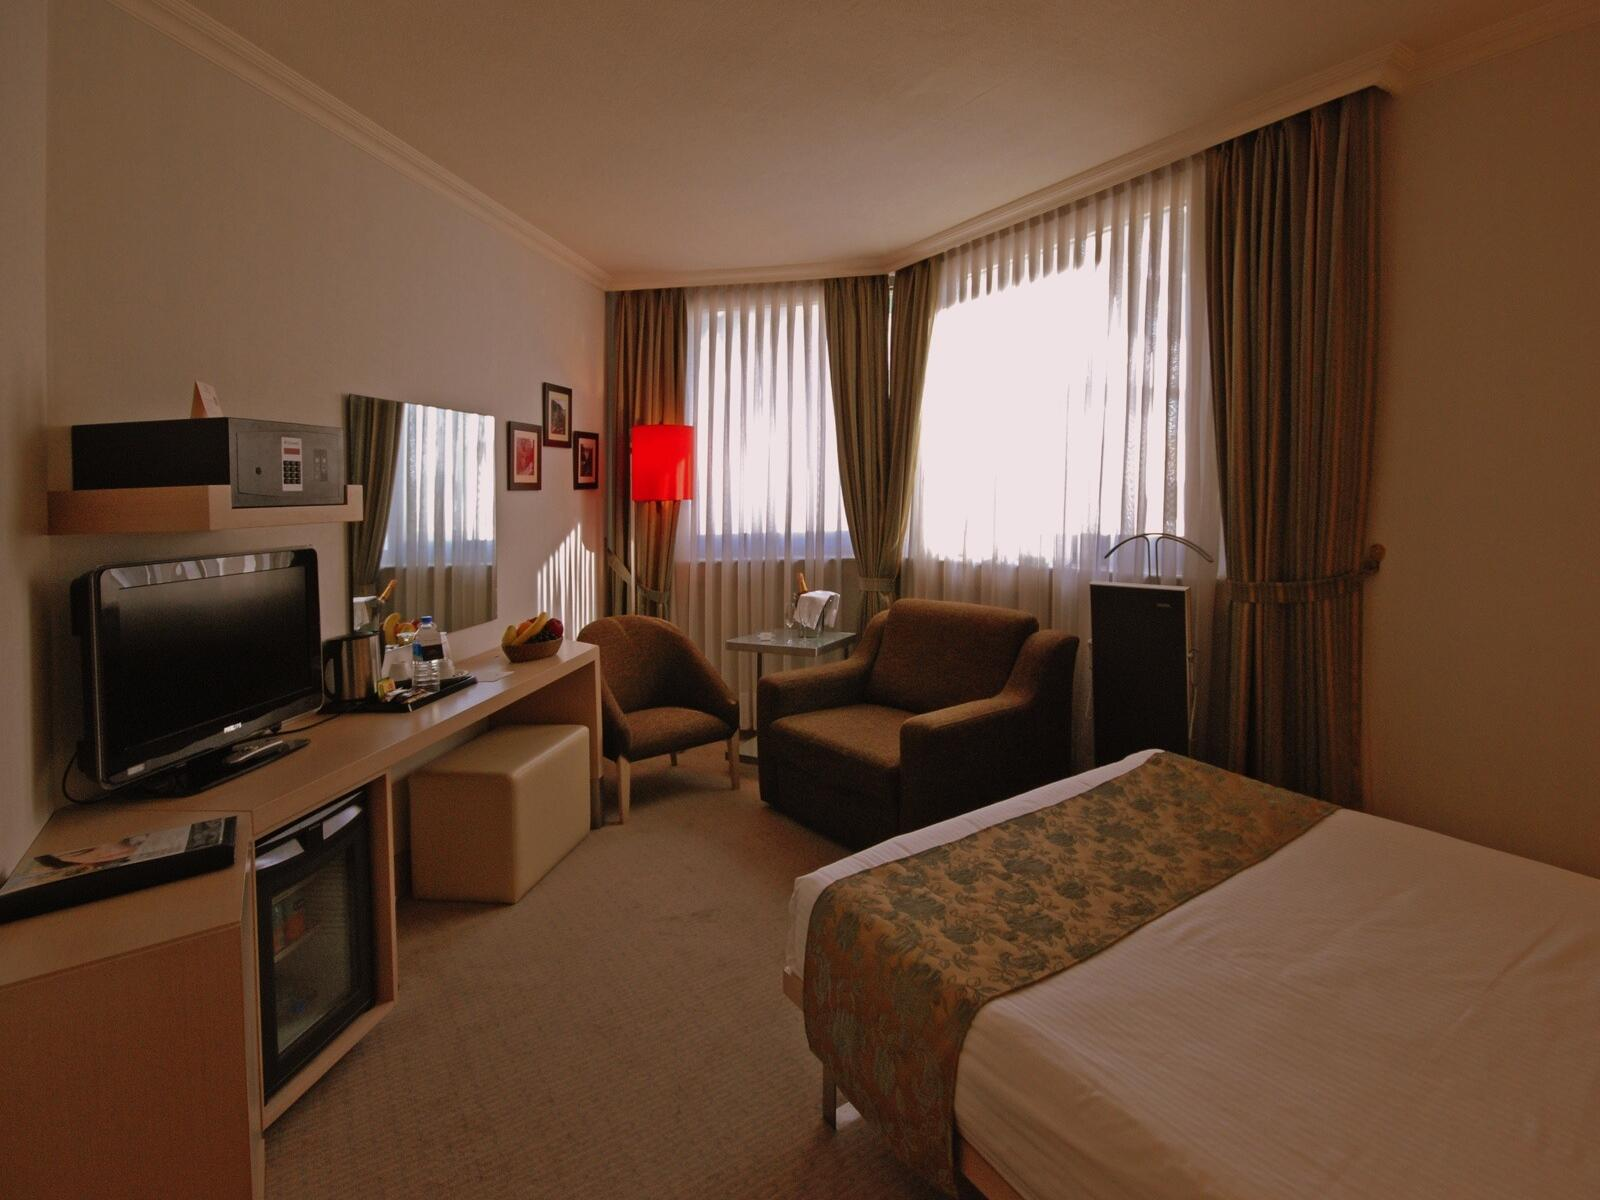 Bed room with a large television at Eresin taxim premier.